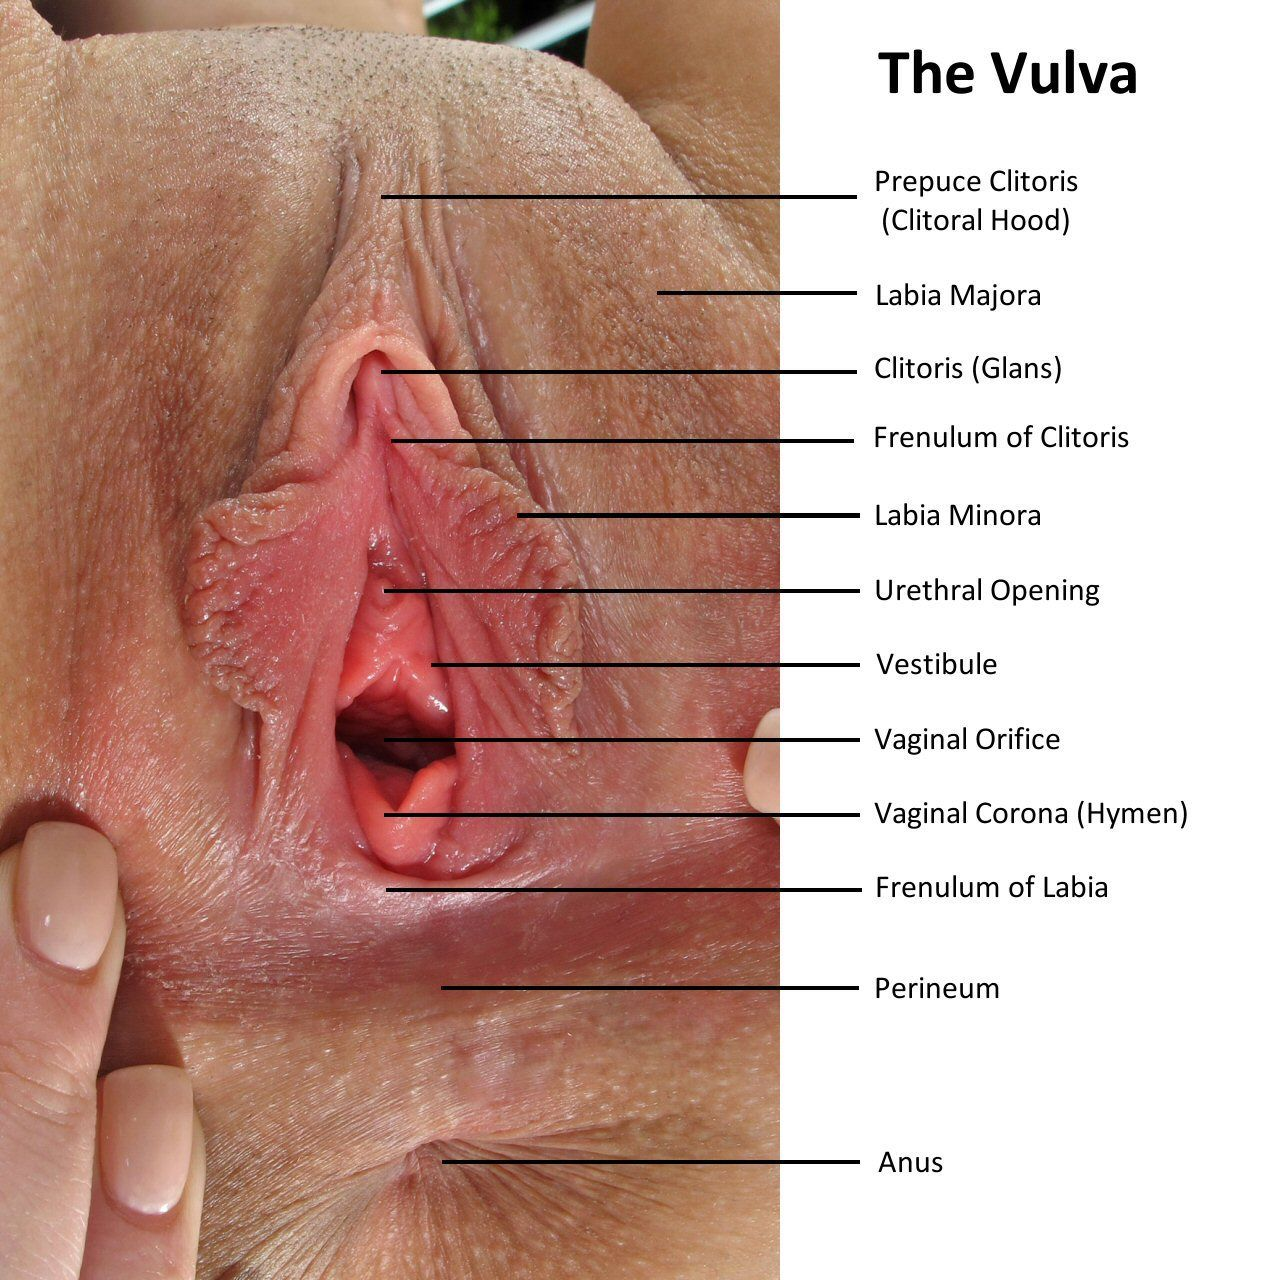 Vulva Anatomy The Vulva Are The External Female Genitals That